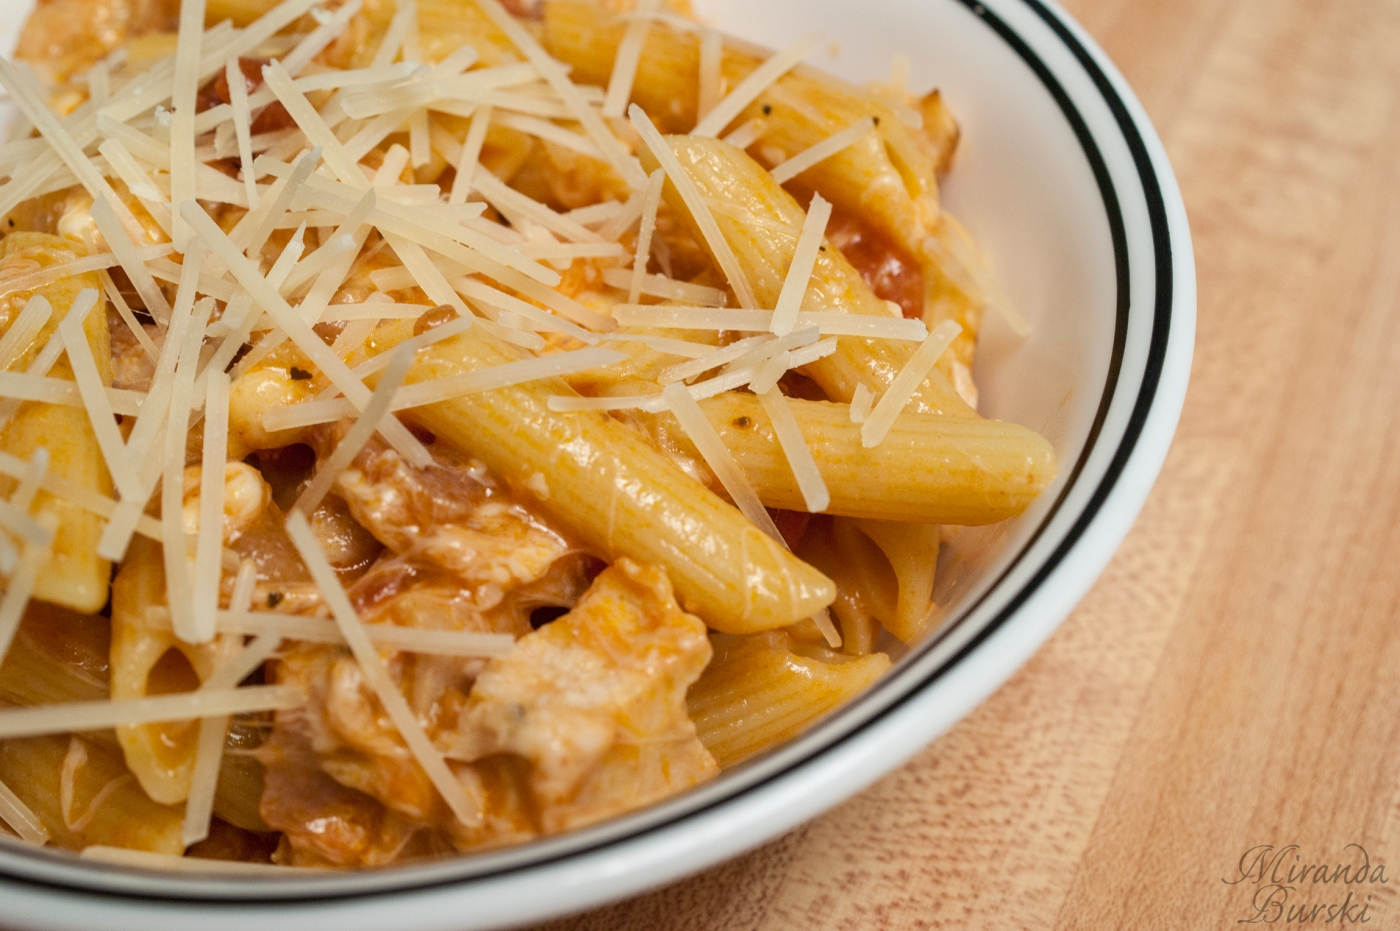 Rigatoni in Blush Sauce with Chicken and Bacon